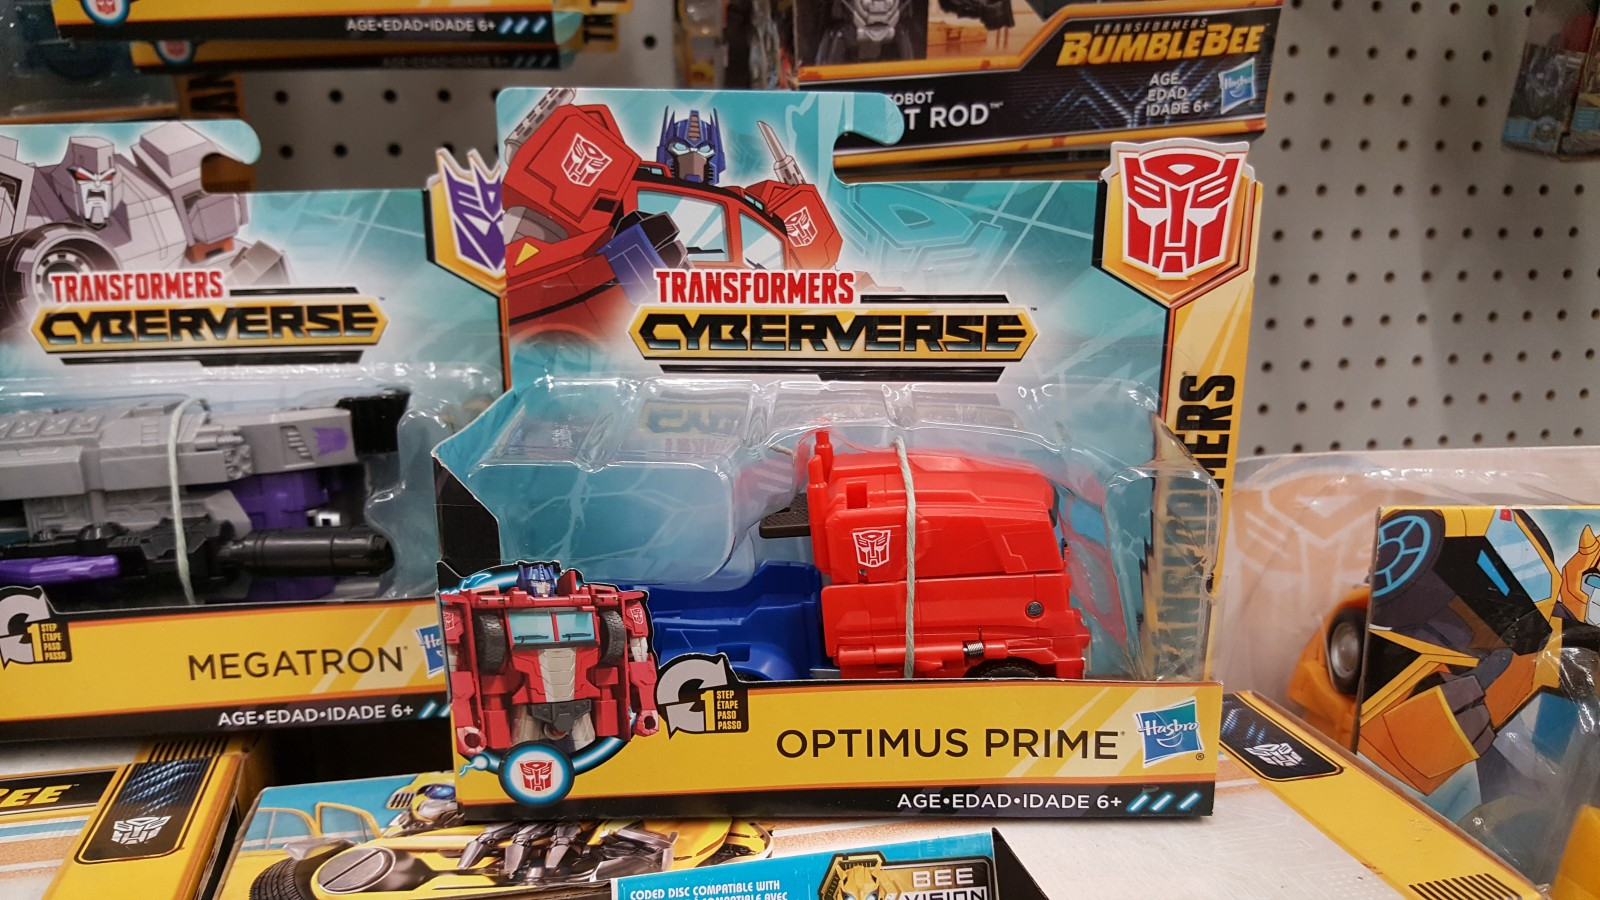 Transformers News: Re: Transformers Cyberverse one-step changers Wave 2 found at retail and 20% off Transformers at Meijers